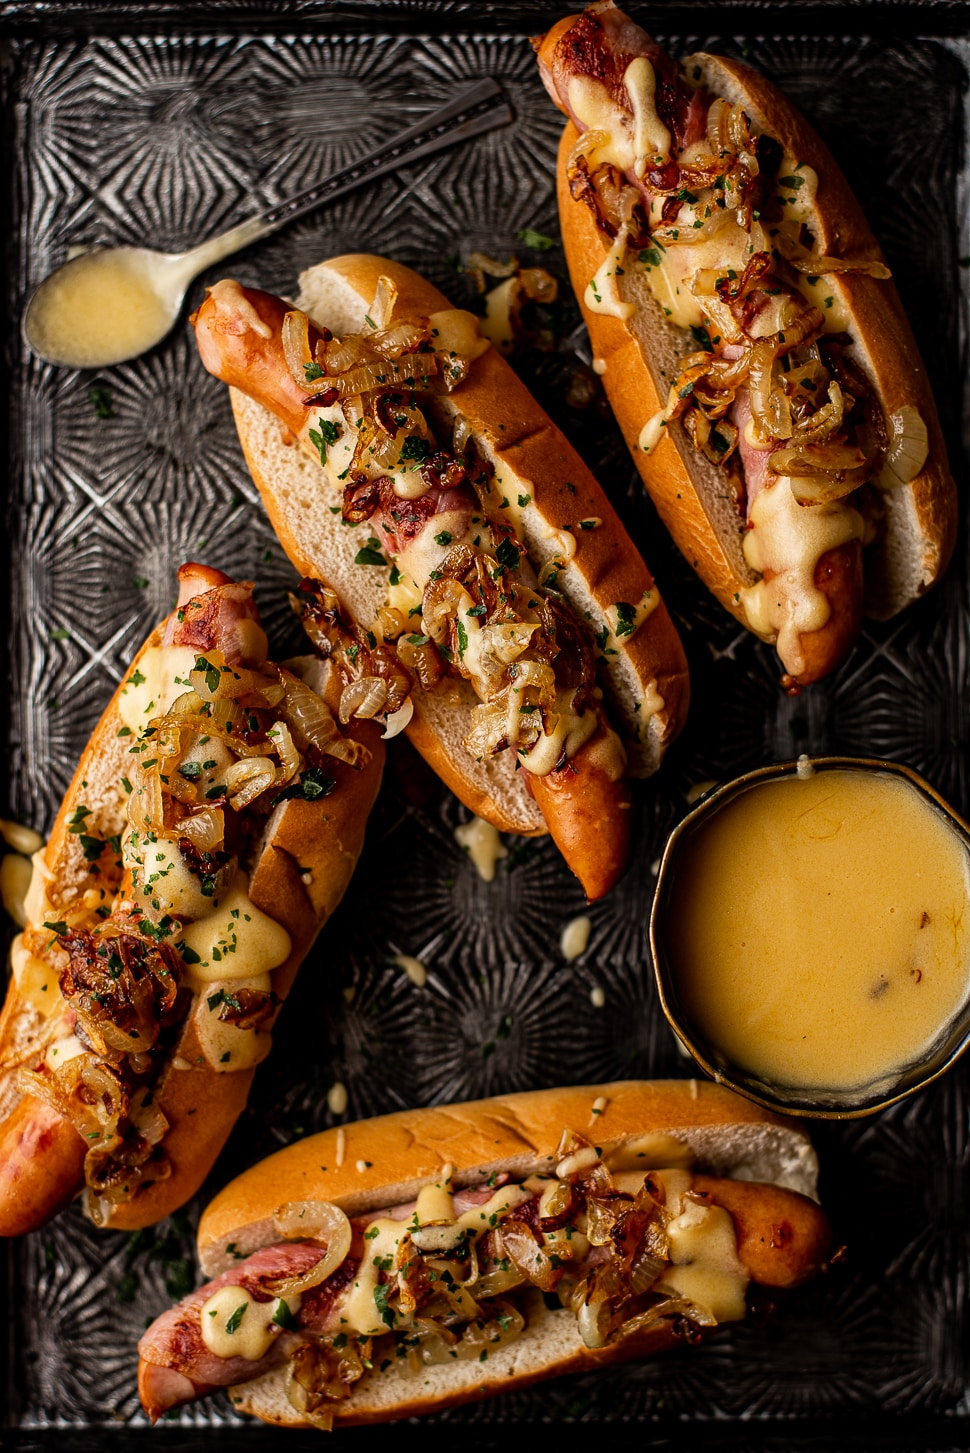 Bacon wrapped hotdogs